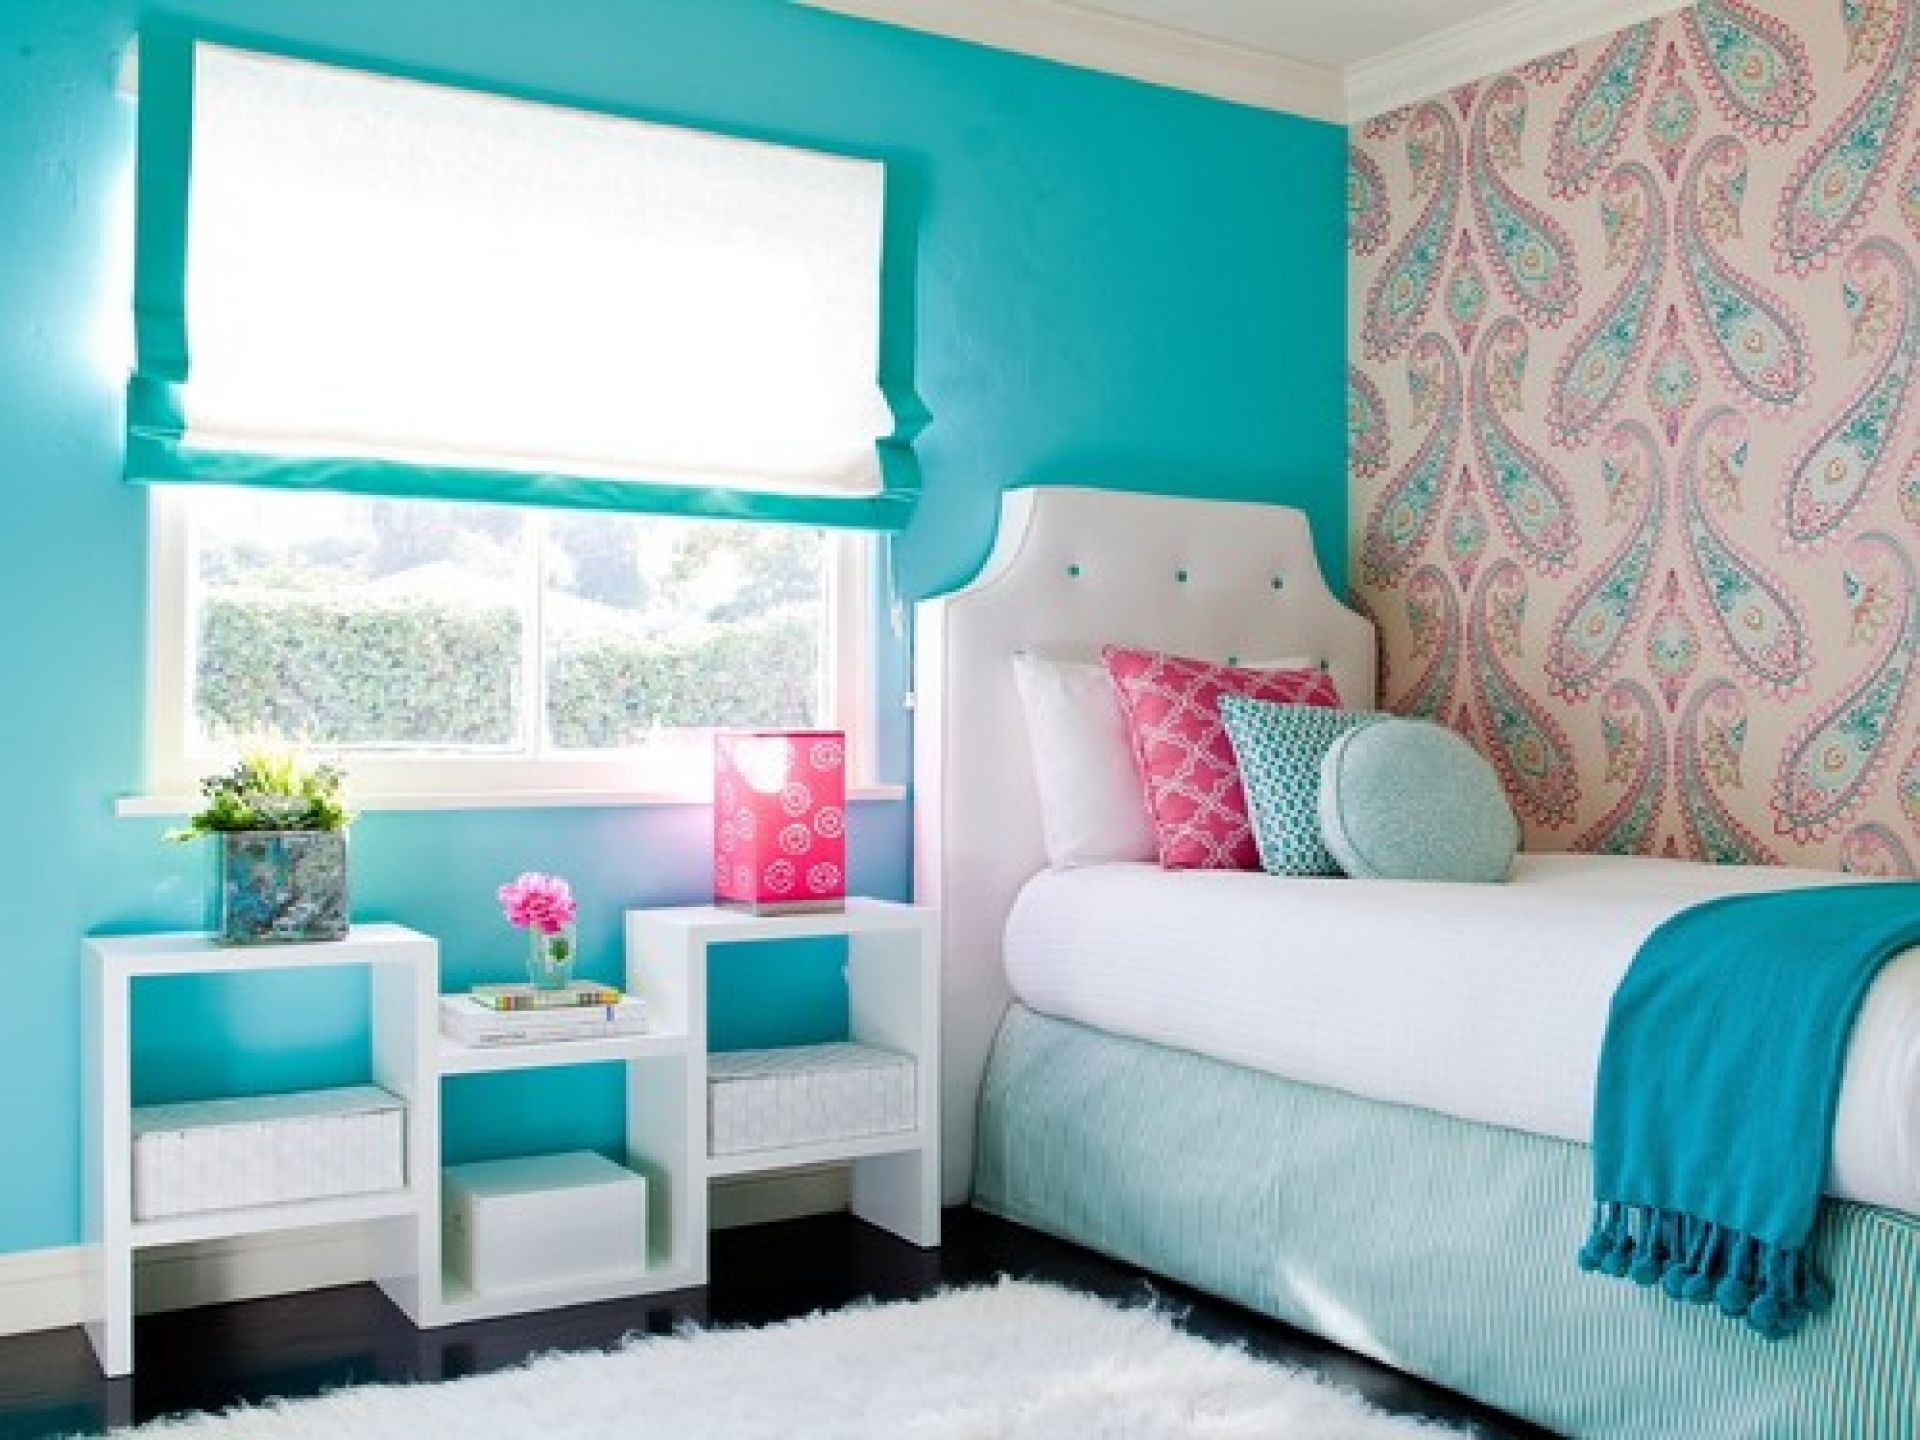 Simple design comfy room colors teenage girl bedroom wall for Bedroom designs for girls